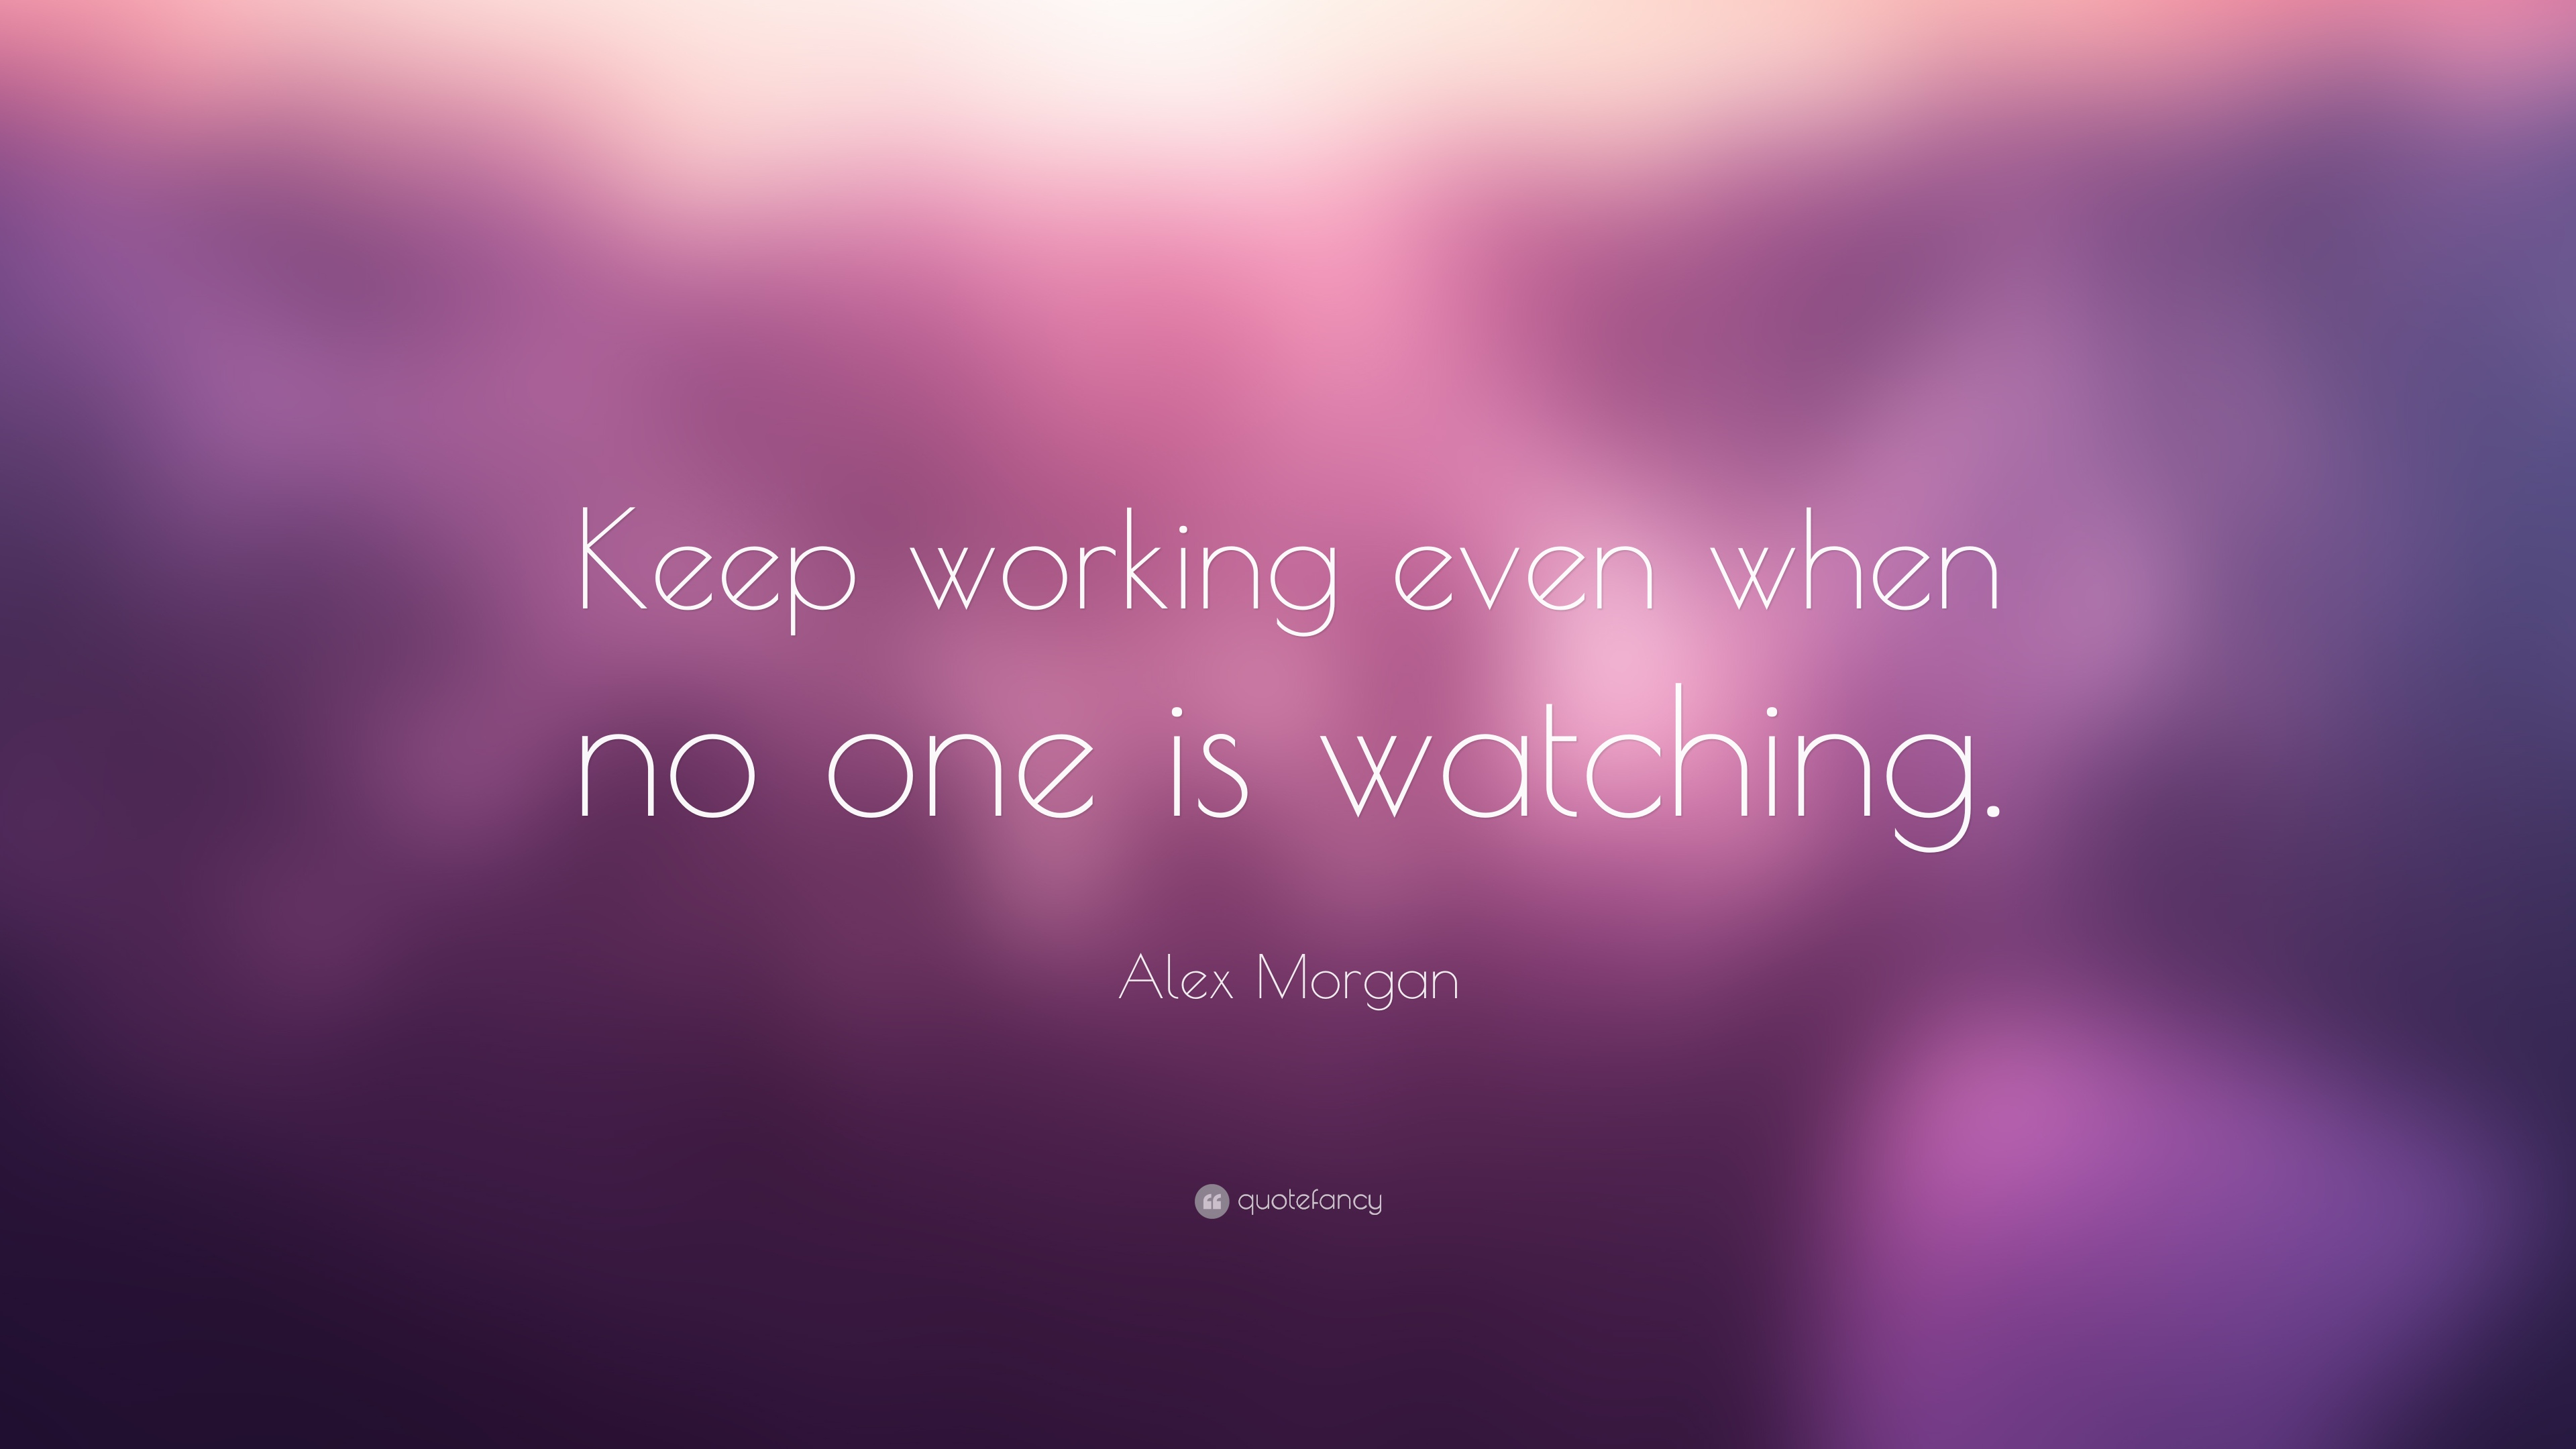 Alex morgan quote keep working even when no one is watching alex morgan quote keep working even when no one is watching voltagebd Image collections